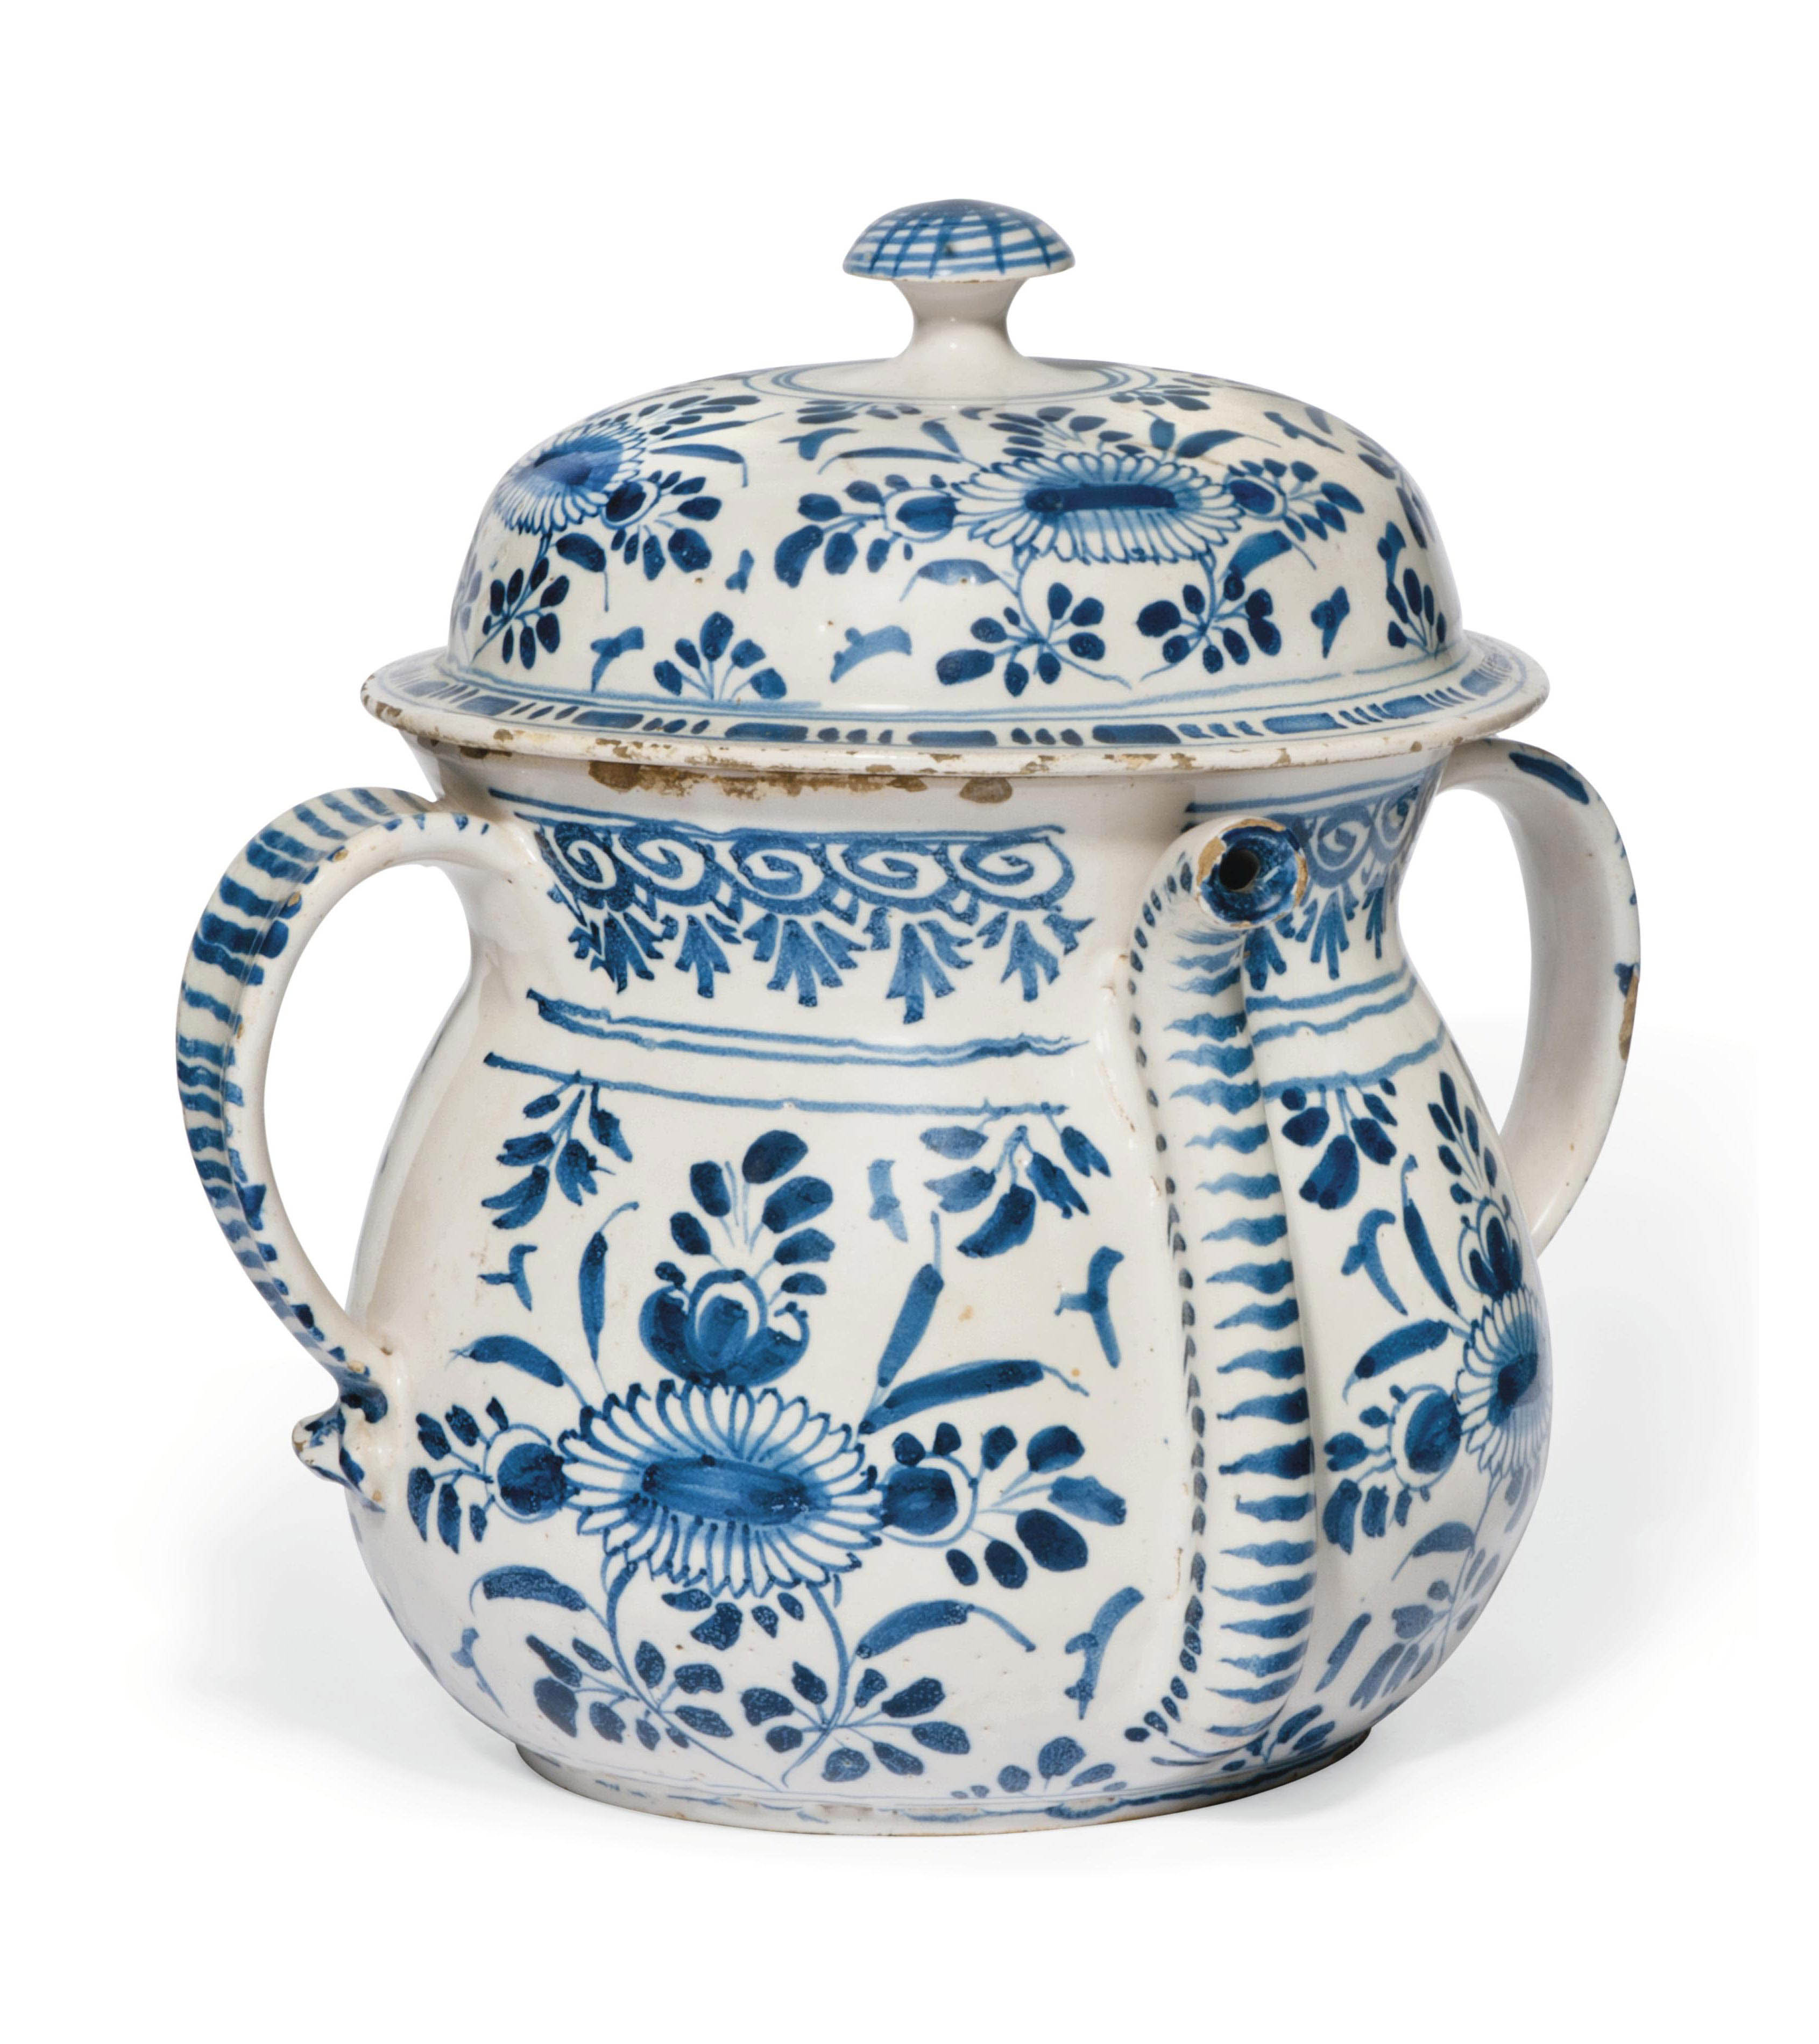 AN ENGLISH DELFT BLUE AND WHITE POSSET-POT AND COVER